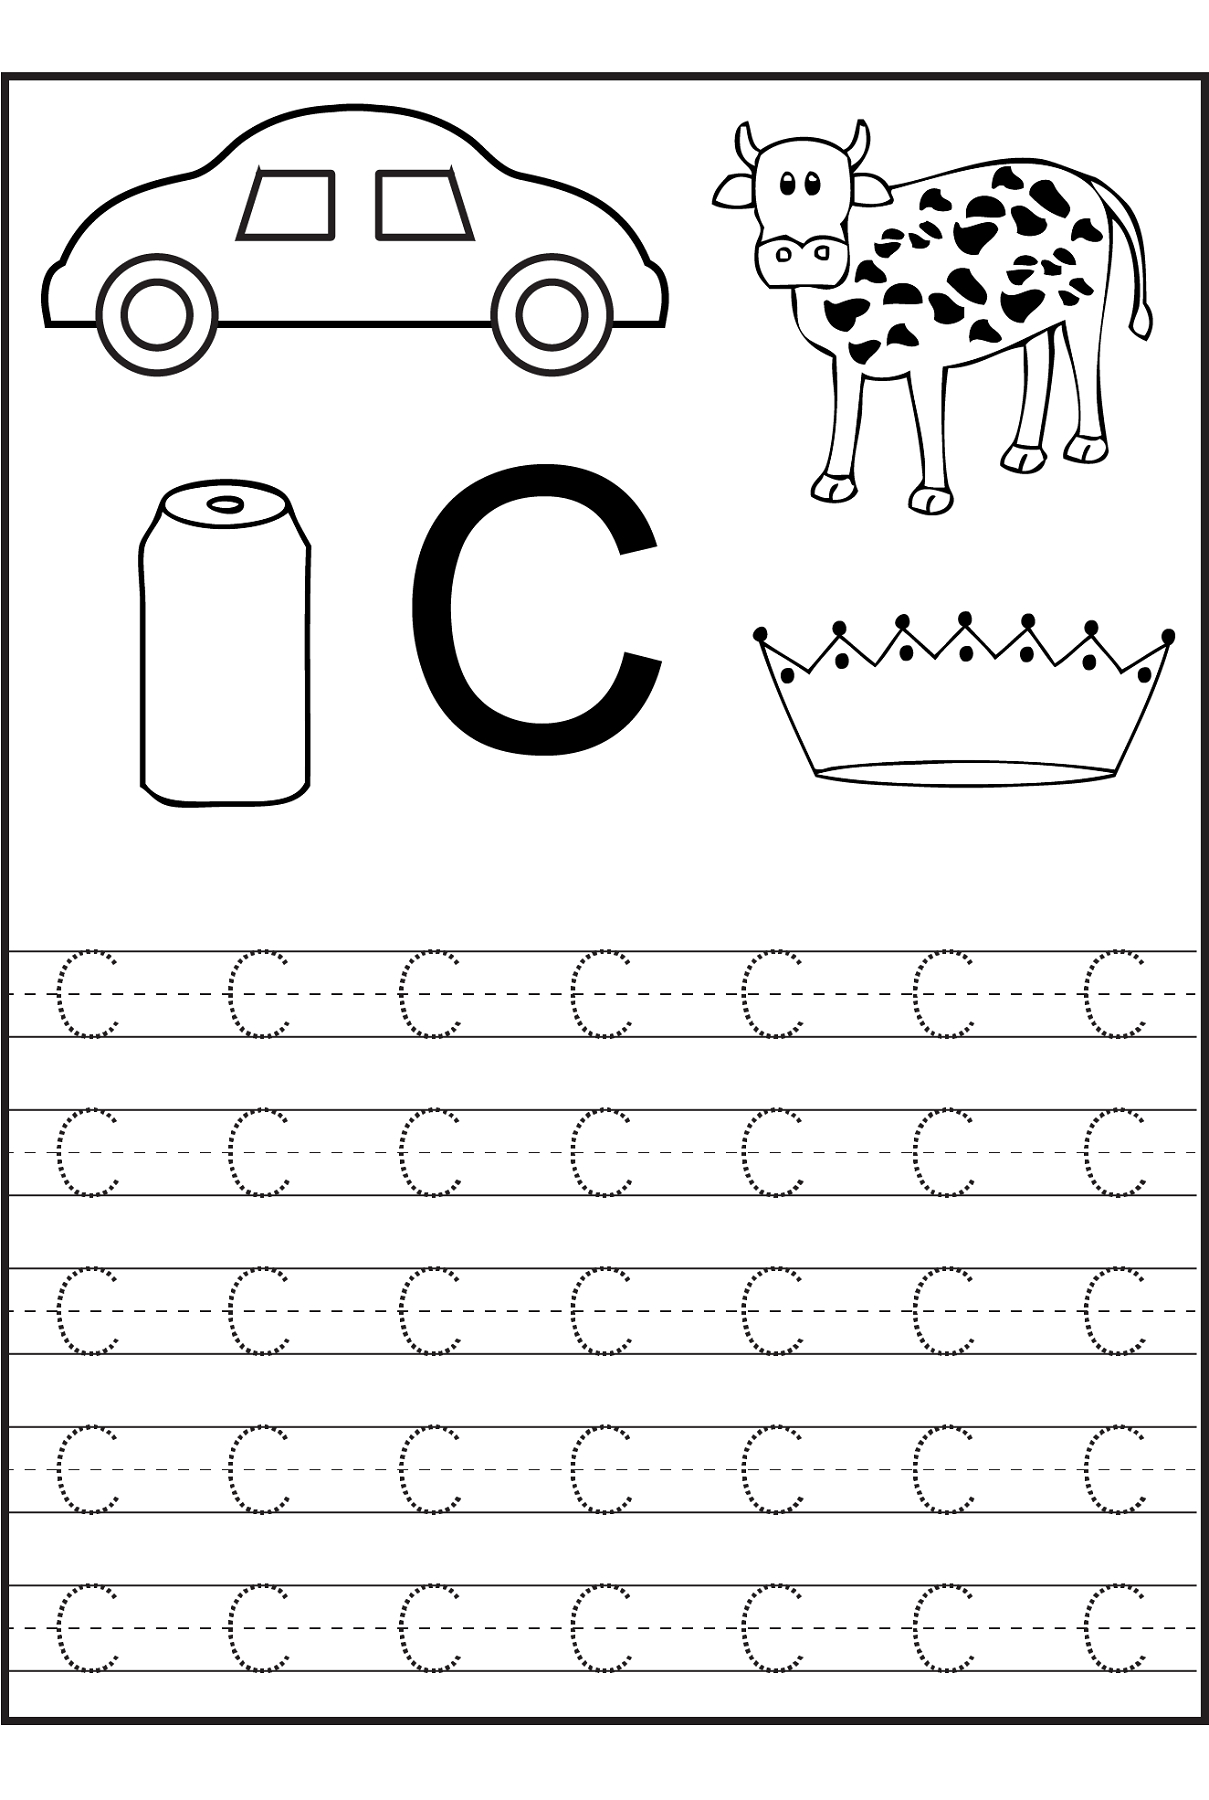 Trace The Letter C Worksheets | Alphabet And Numbers Learning - Free Printable Preschool Worksheets Letter C